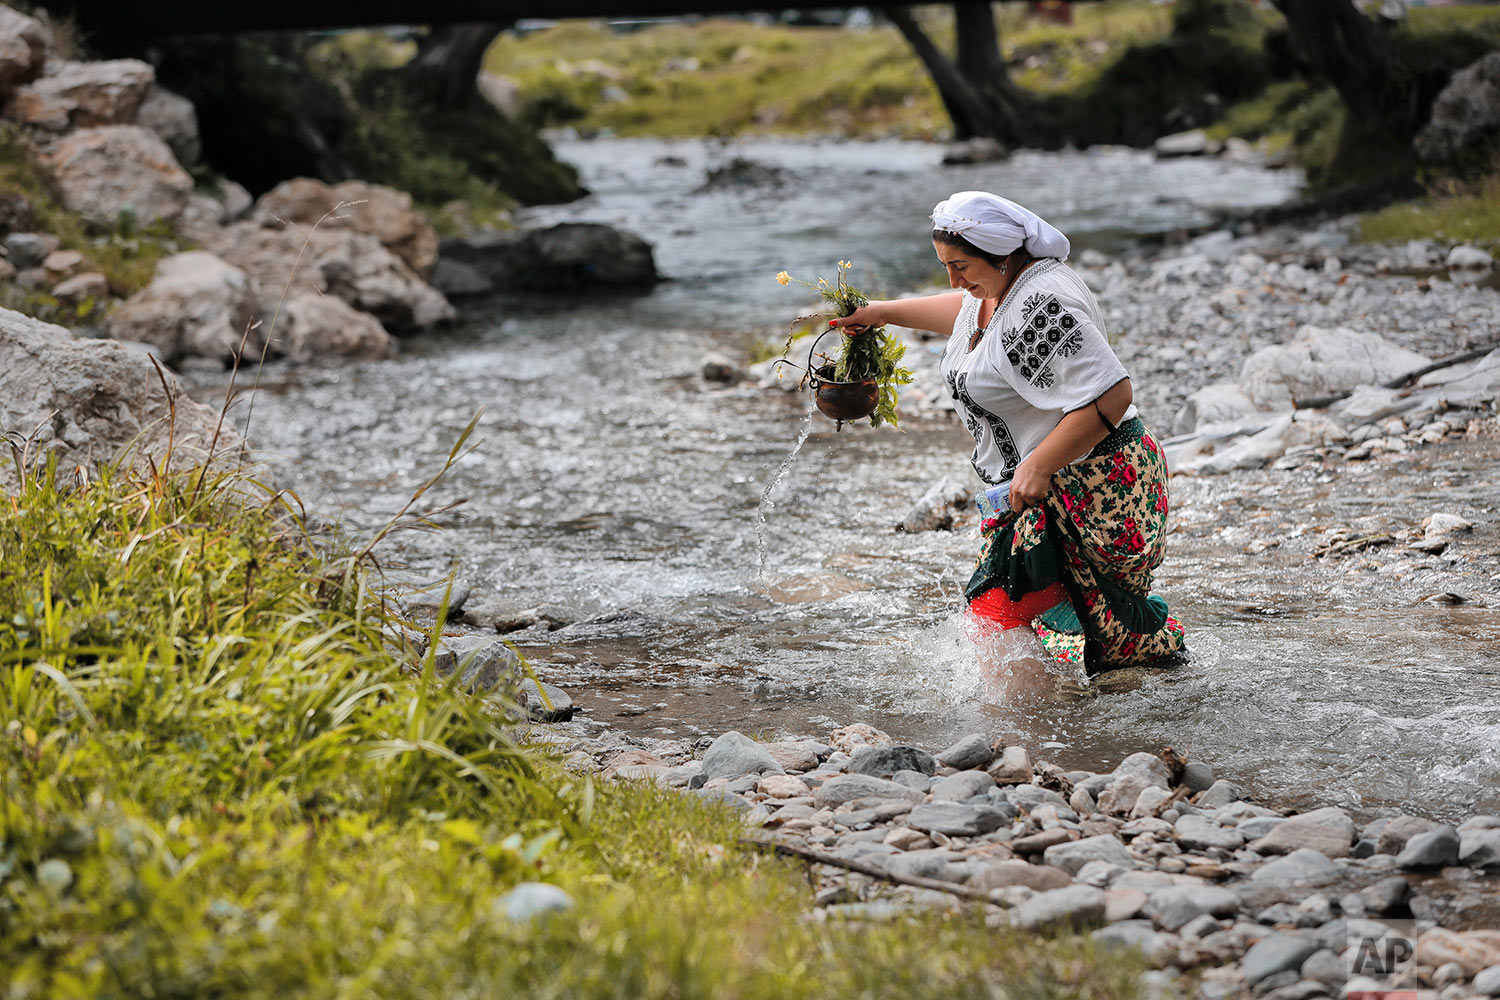 In this Friday, Sept. 8, 2017 photograph, Monica the Roma witch crosses a river pouring water from a container during what she described as a ritual to help unmarried women find good husbands in Costesti, Romania. (AP Photo/Vadim Ghirda)